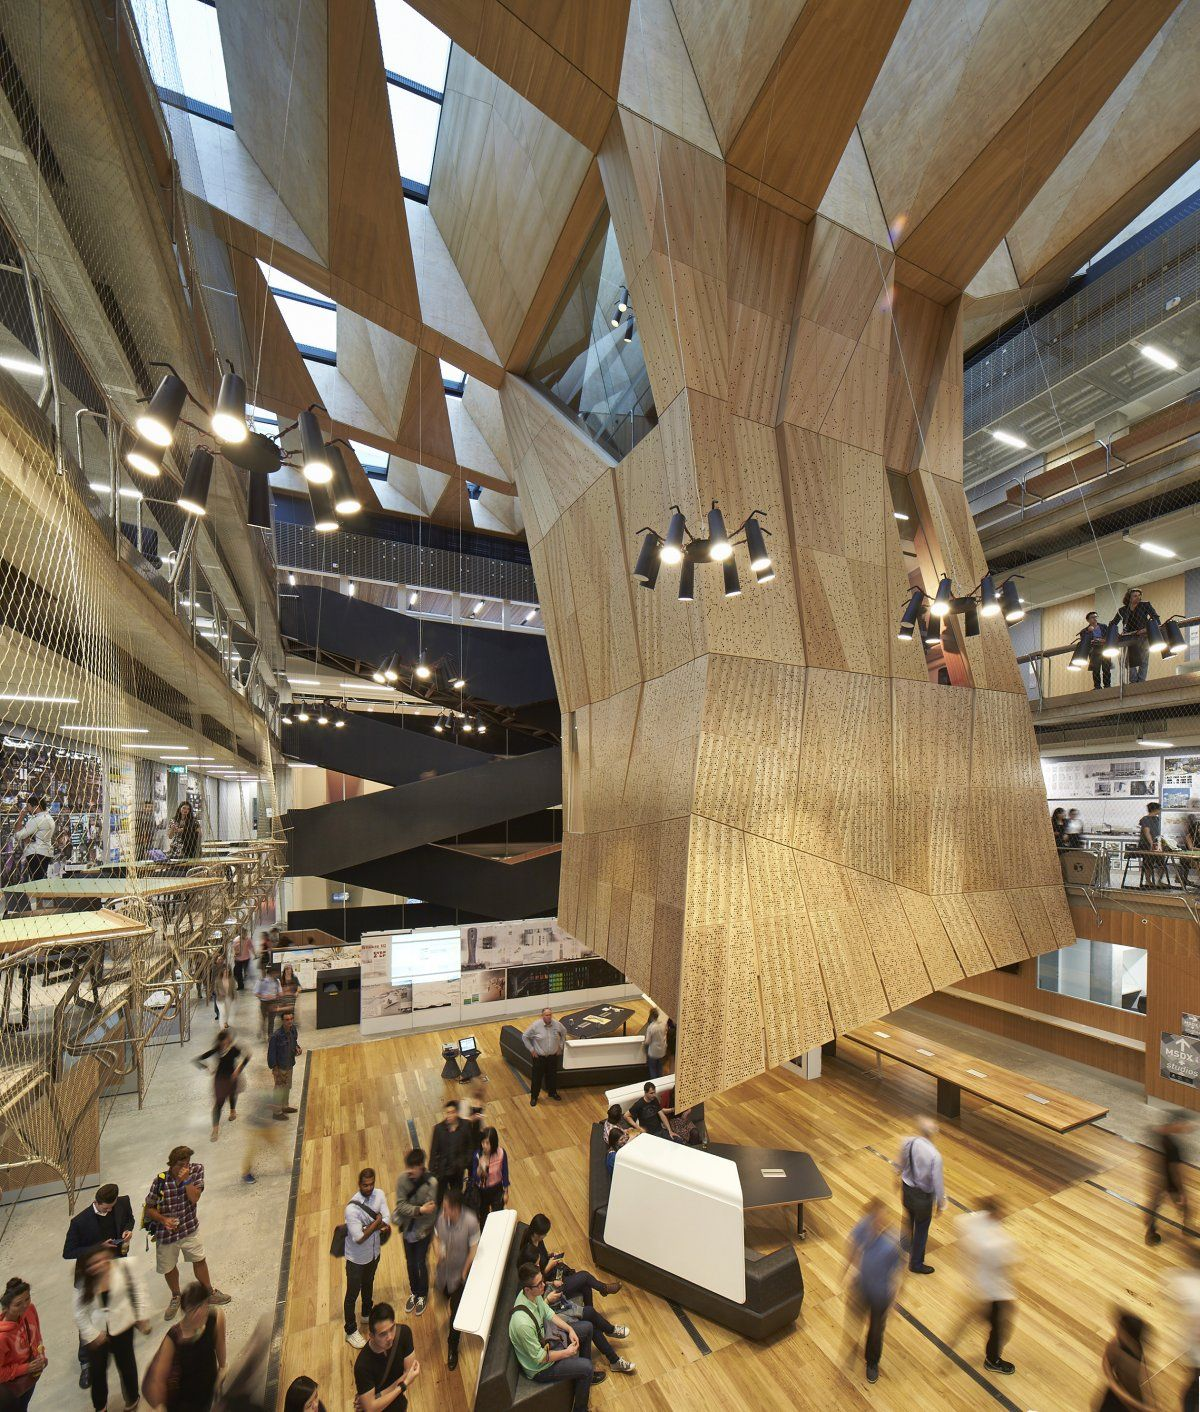 15 Of The Most Beautiful Schools Around World University MelbourneInterior ArchitectureInterior DesignMelbourne